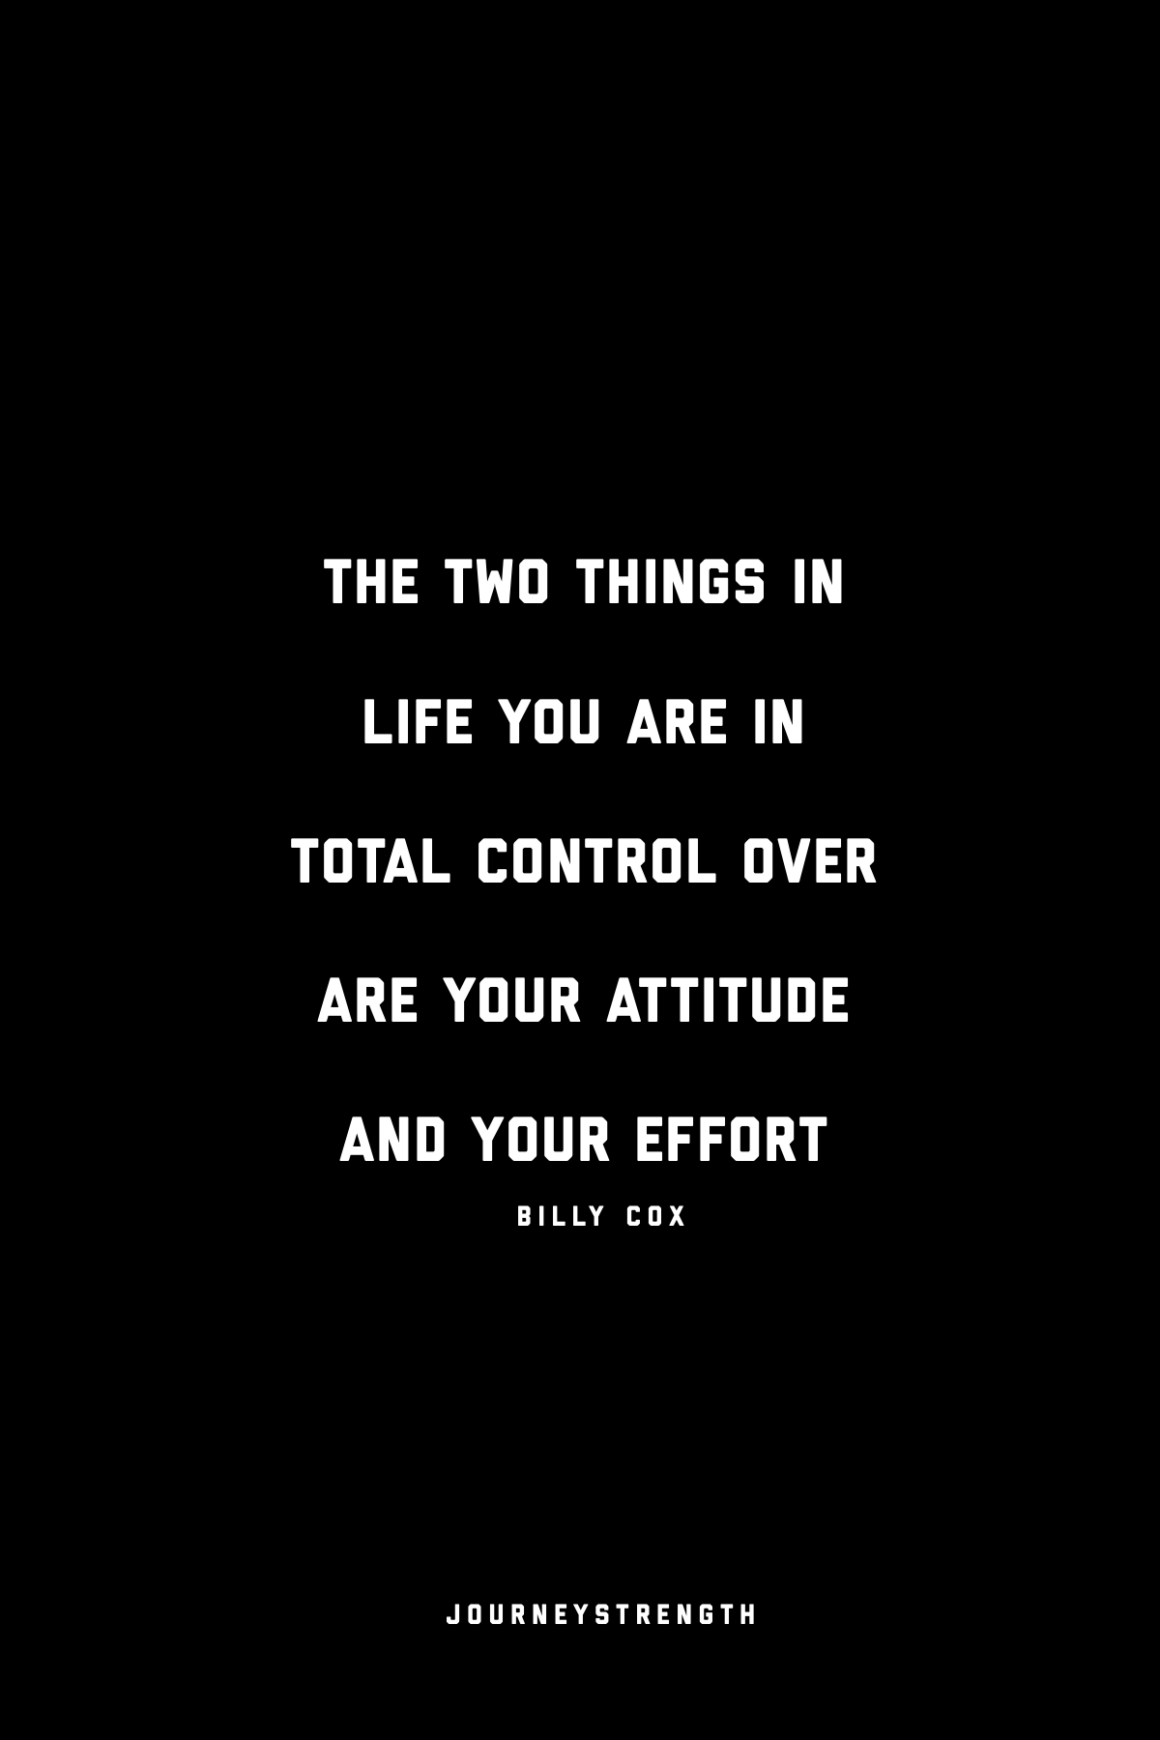 the things in life you are in total control over are your attitude and your effort. quotes